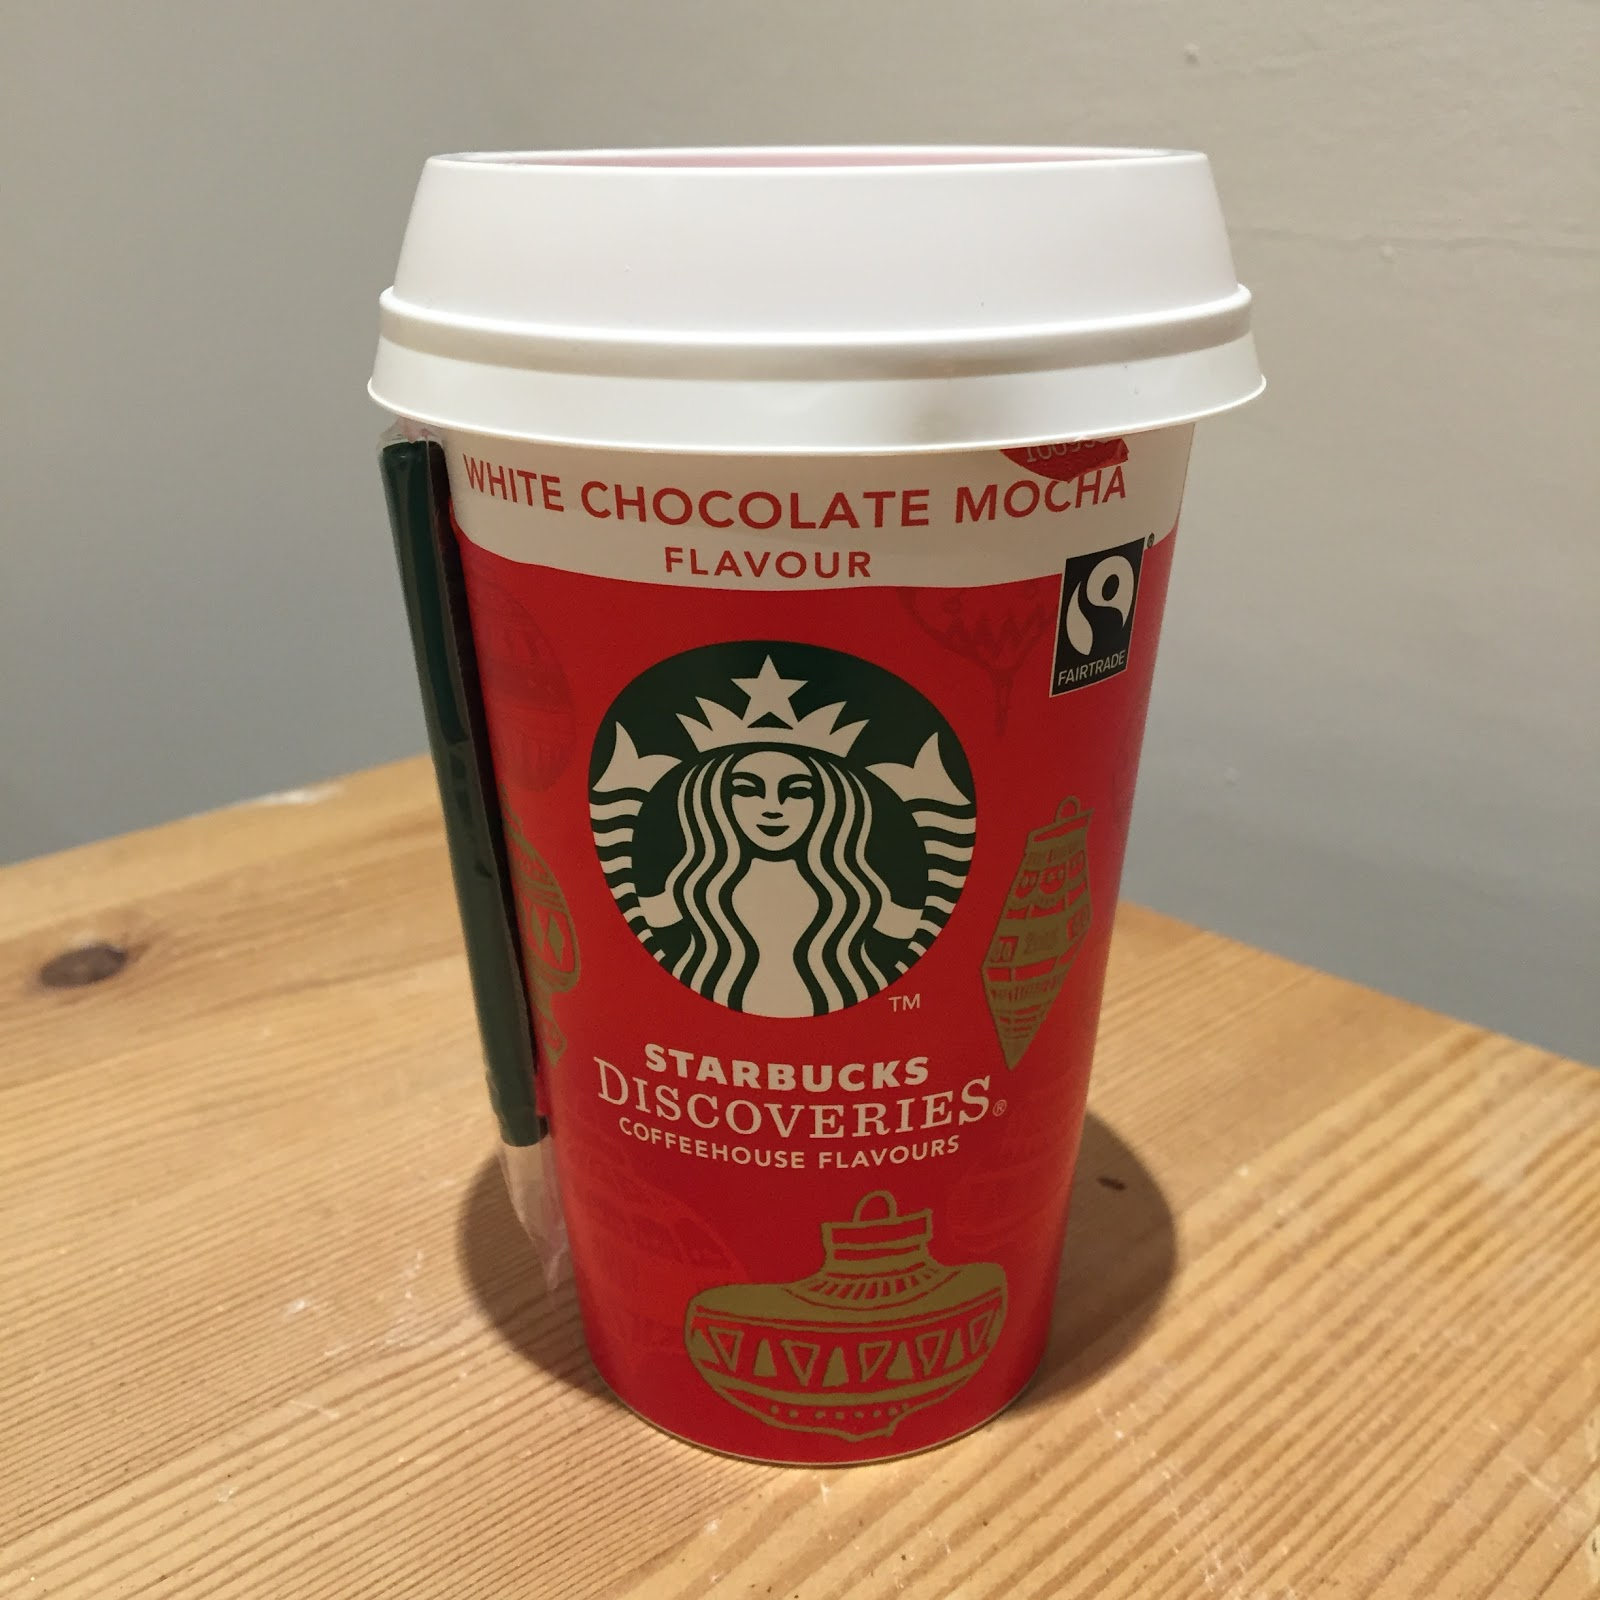 Amy Seeks New Treats: NEW Starbucks White Chocolate Mocha at ASDA